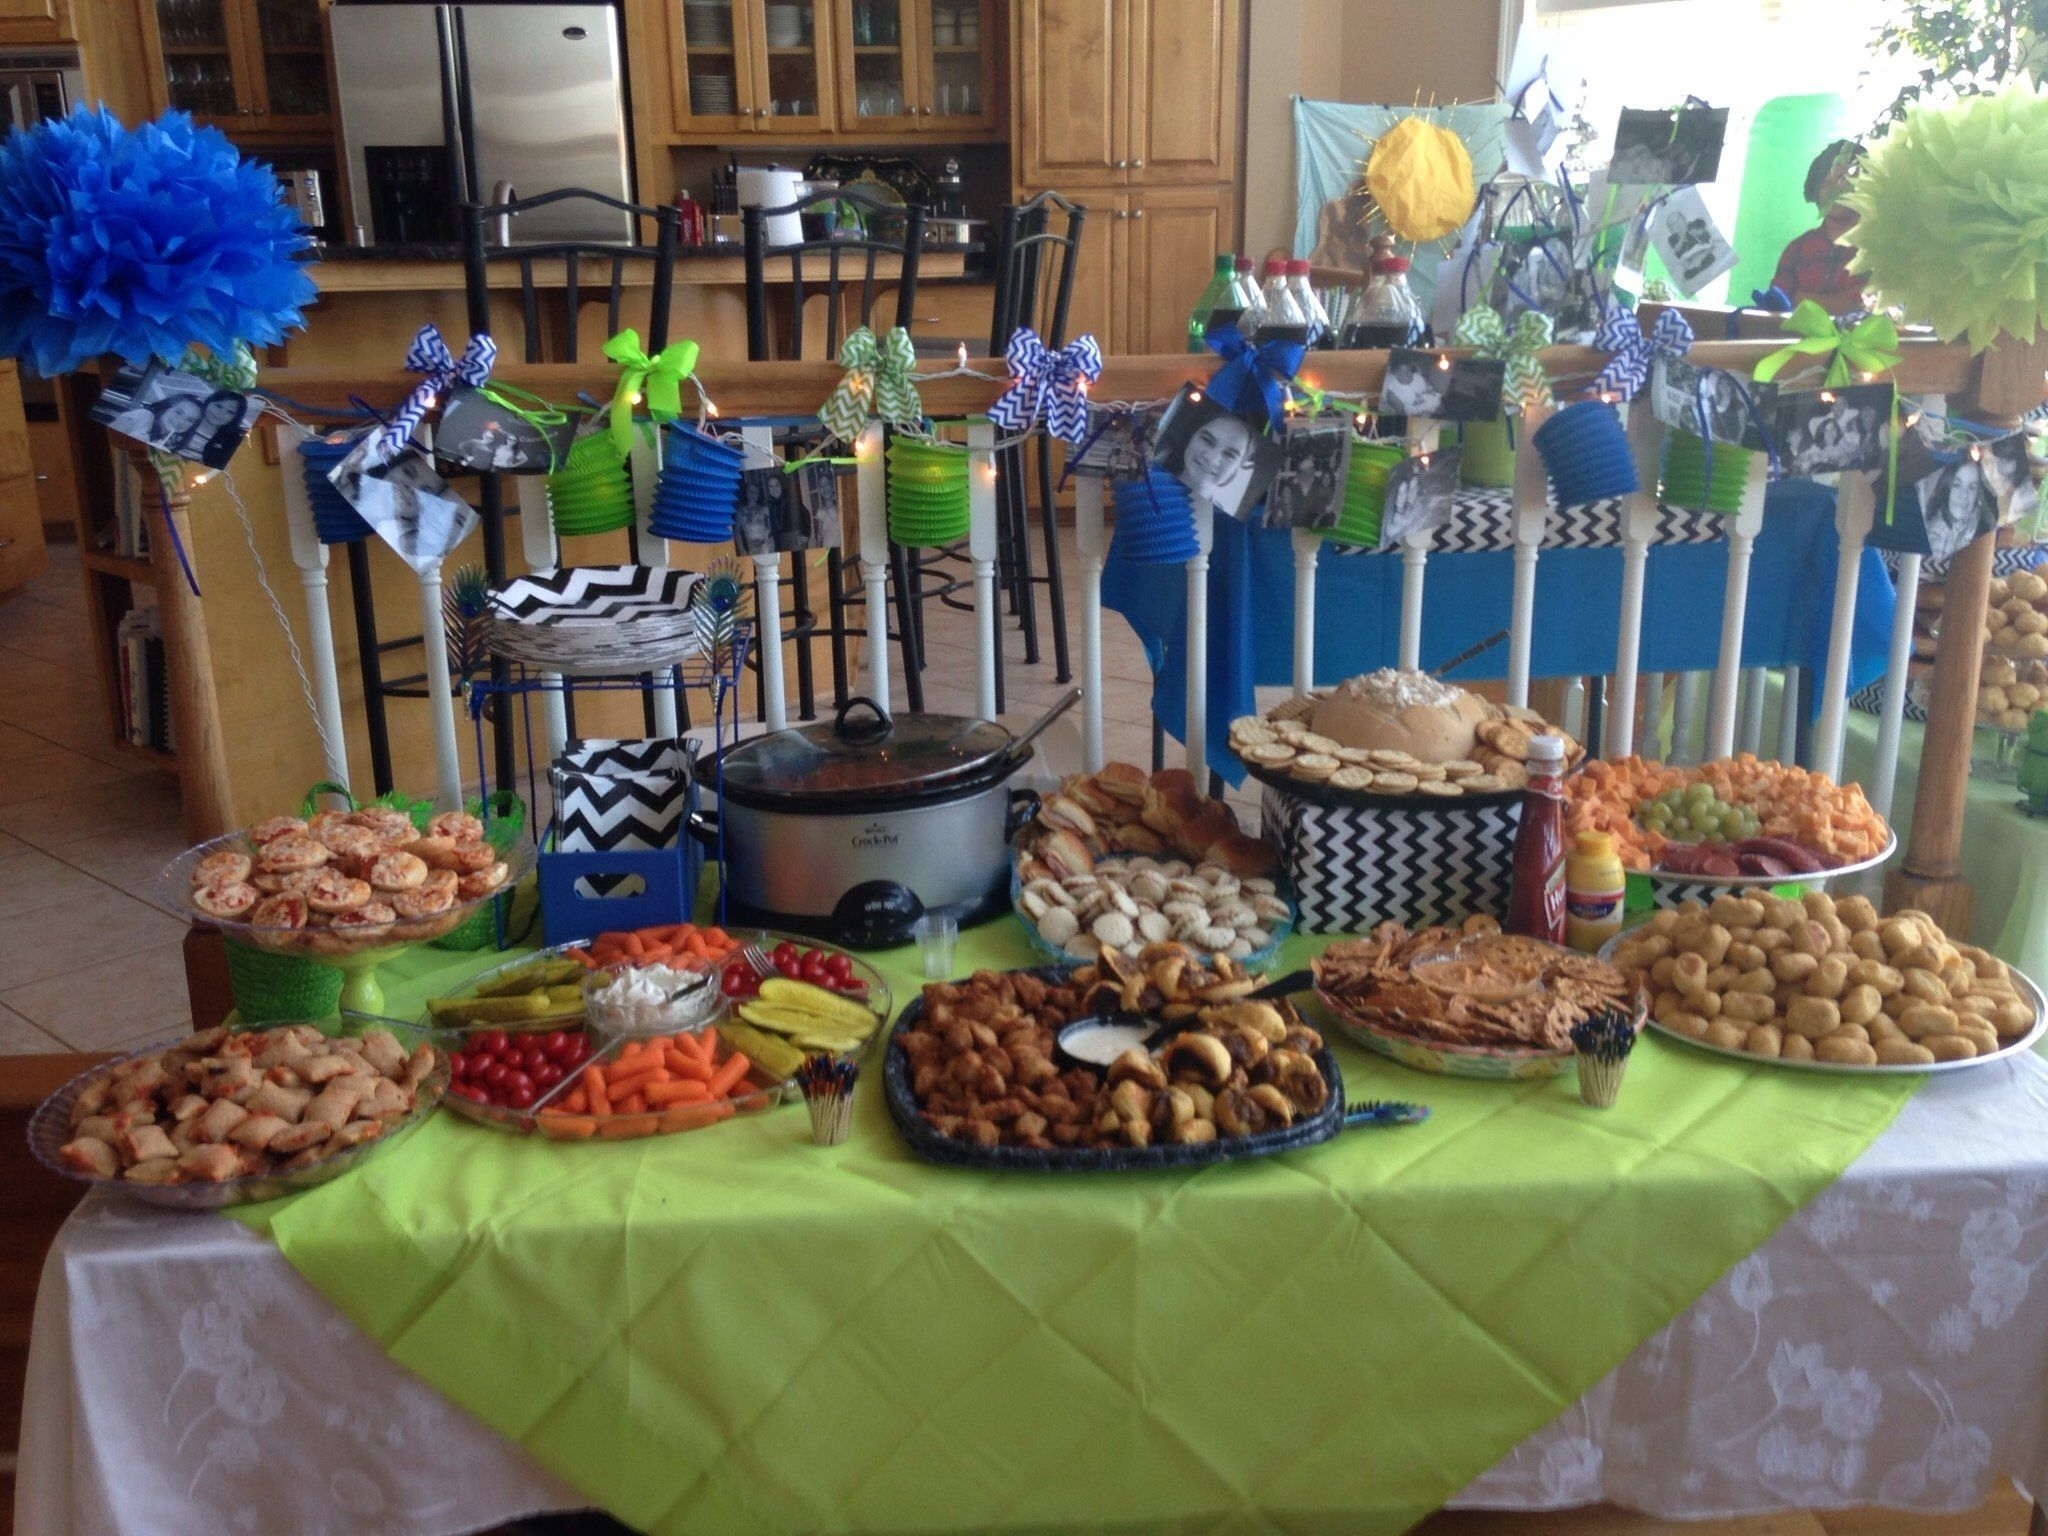 10 Trendy 13 Year Old Birthday Party Ideas For Boys Birthday Party For Teens Boy Birthday Parties Fun Birthday Party